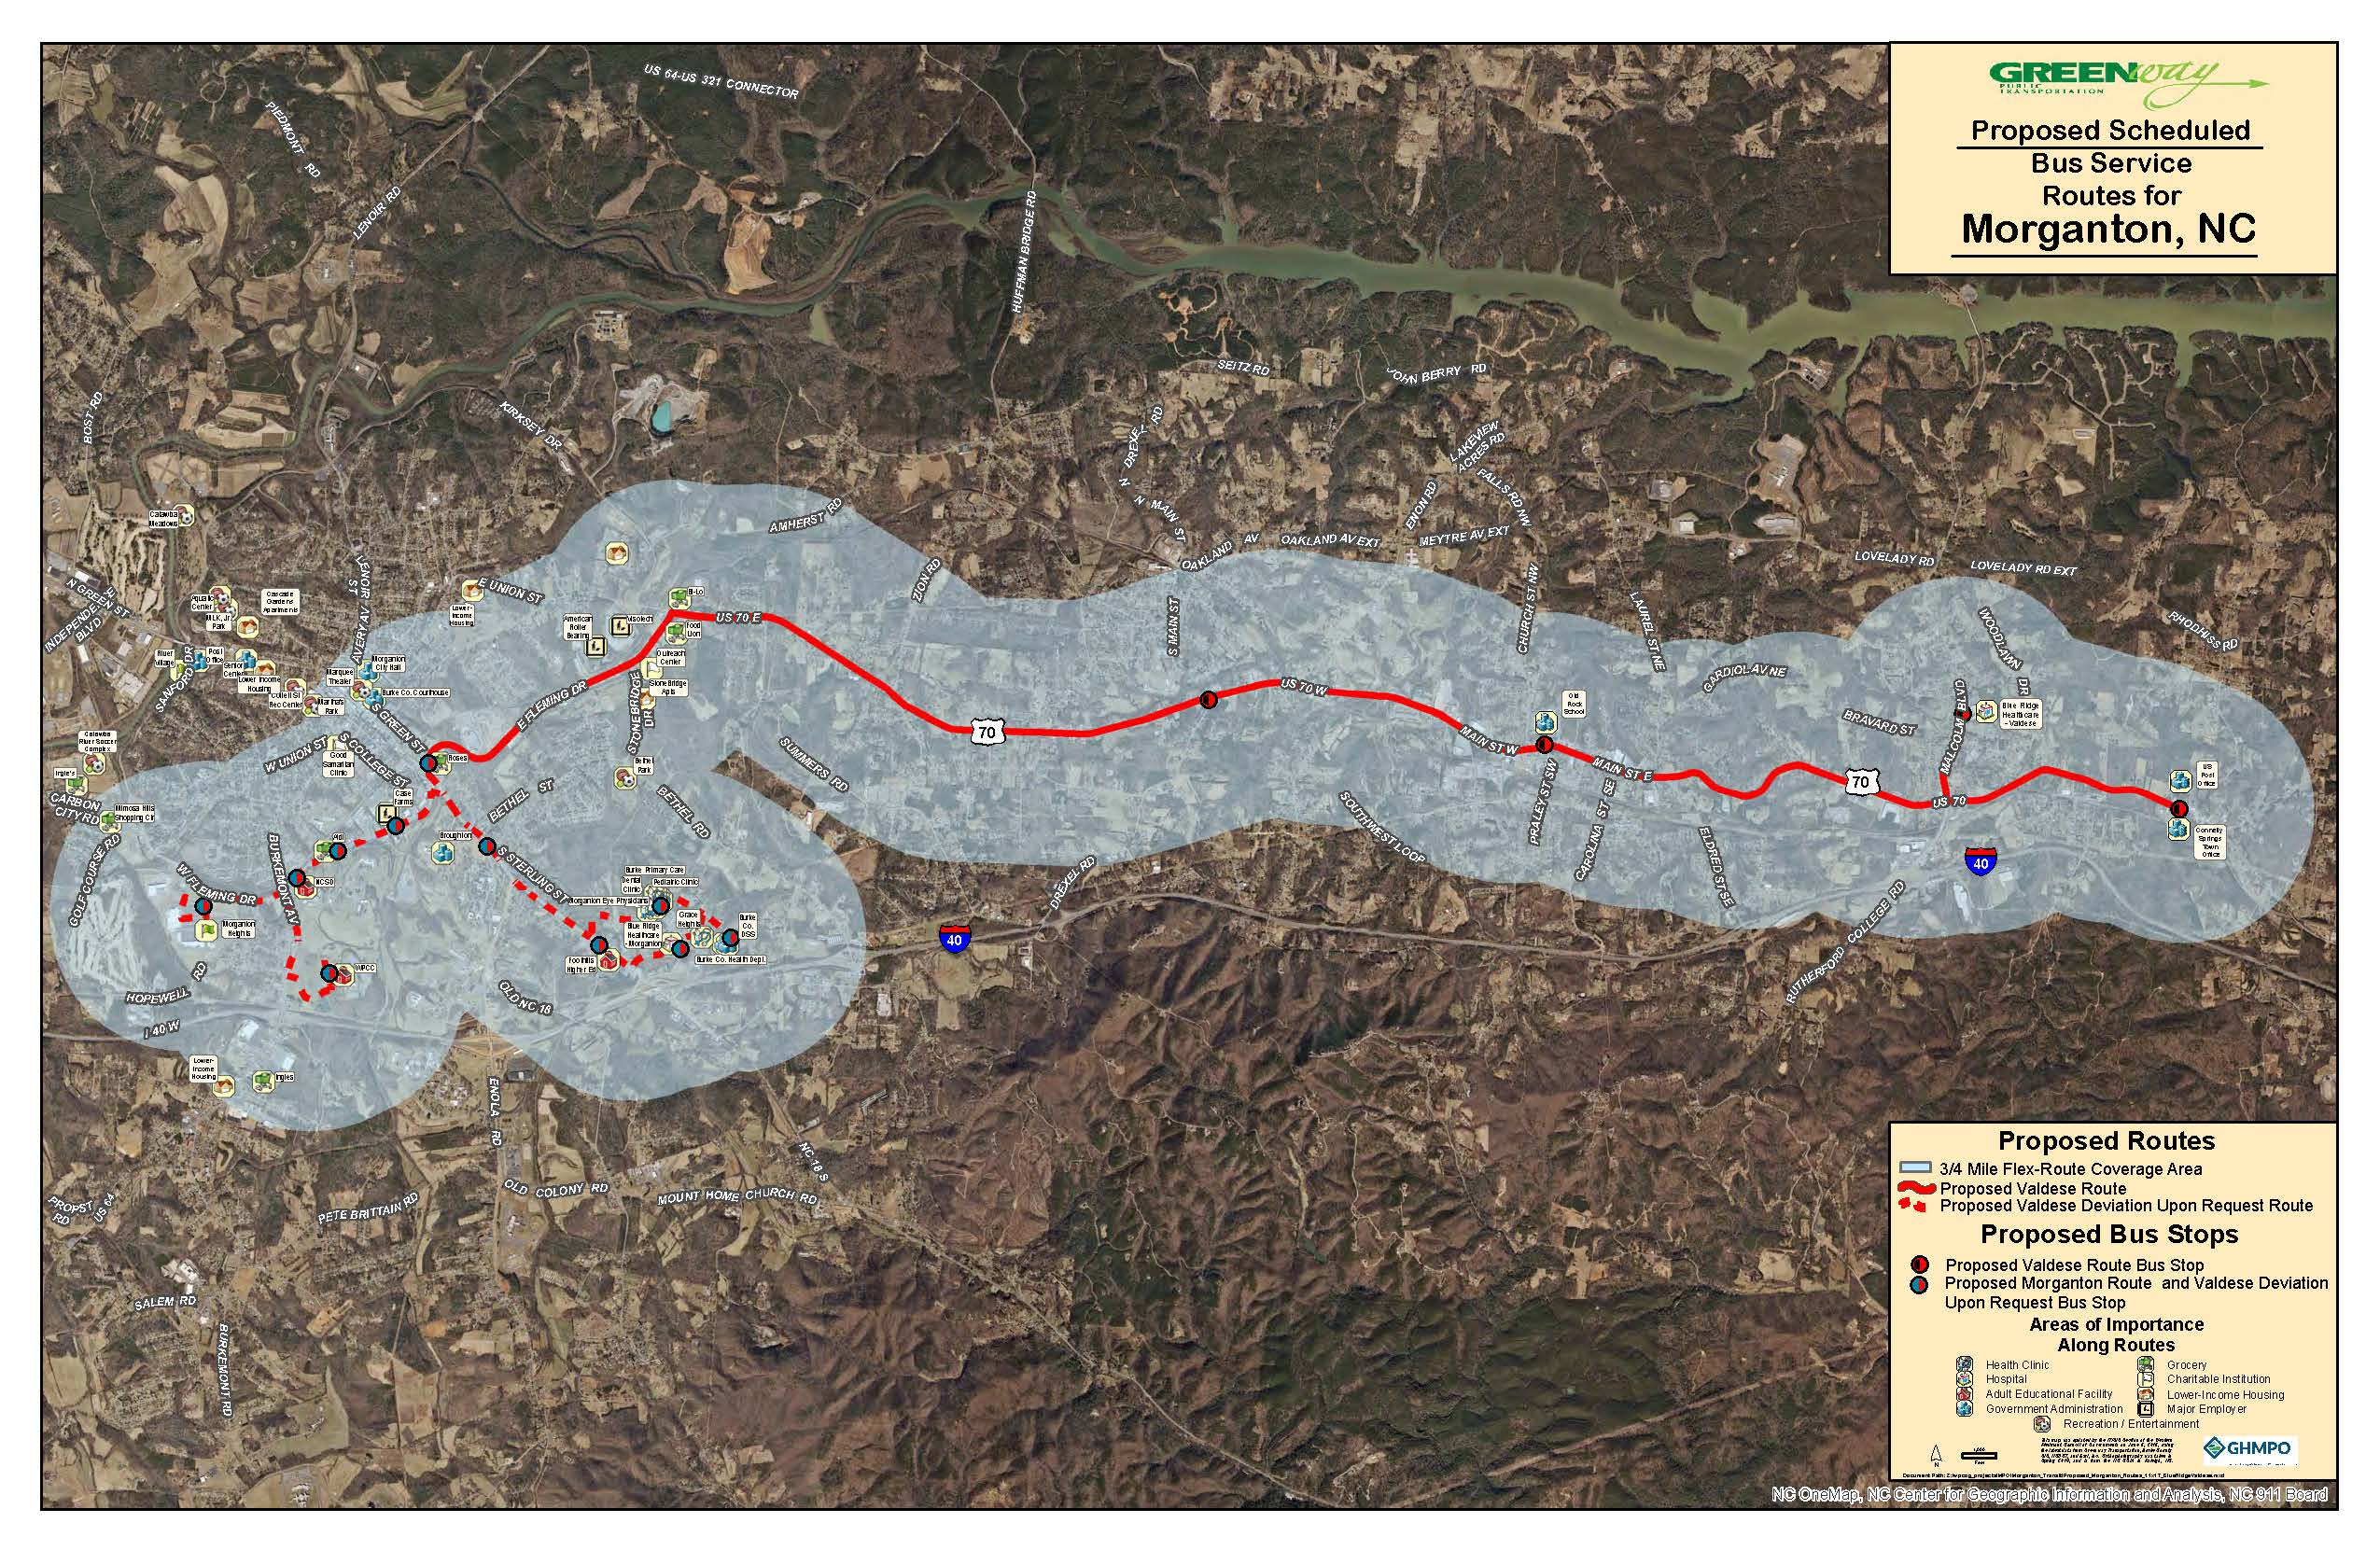 Proposed Route - Valdese/BlueRidge